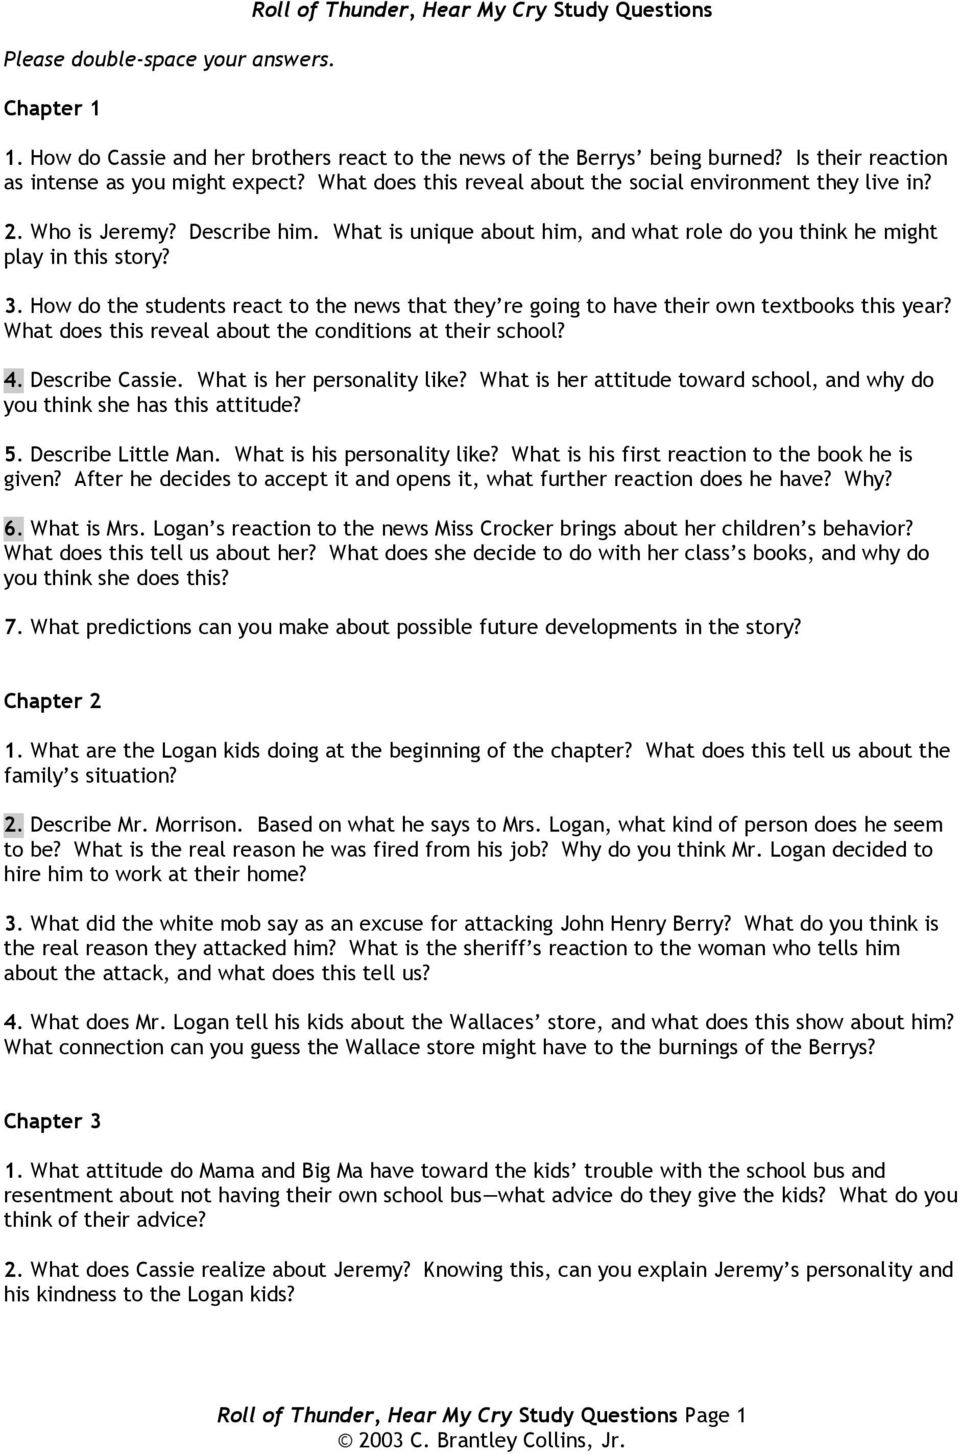 Roll Of Thunder Hear My Cry Study Questions Pdf